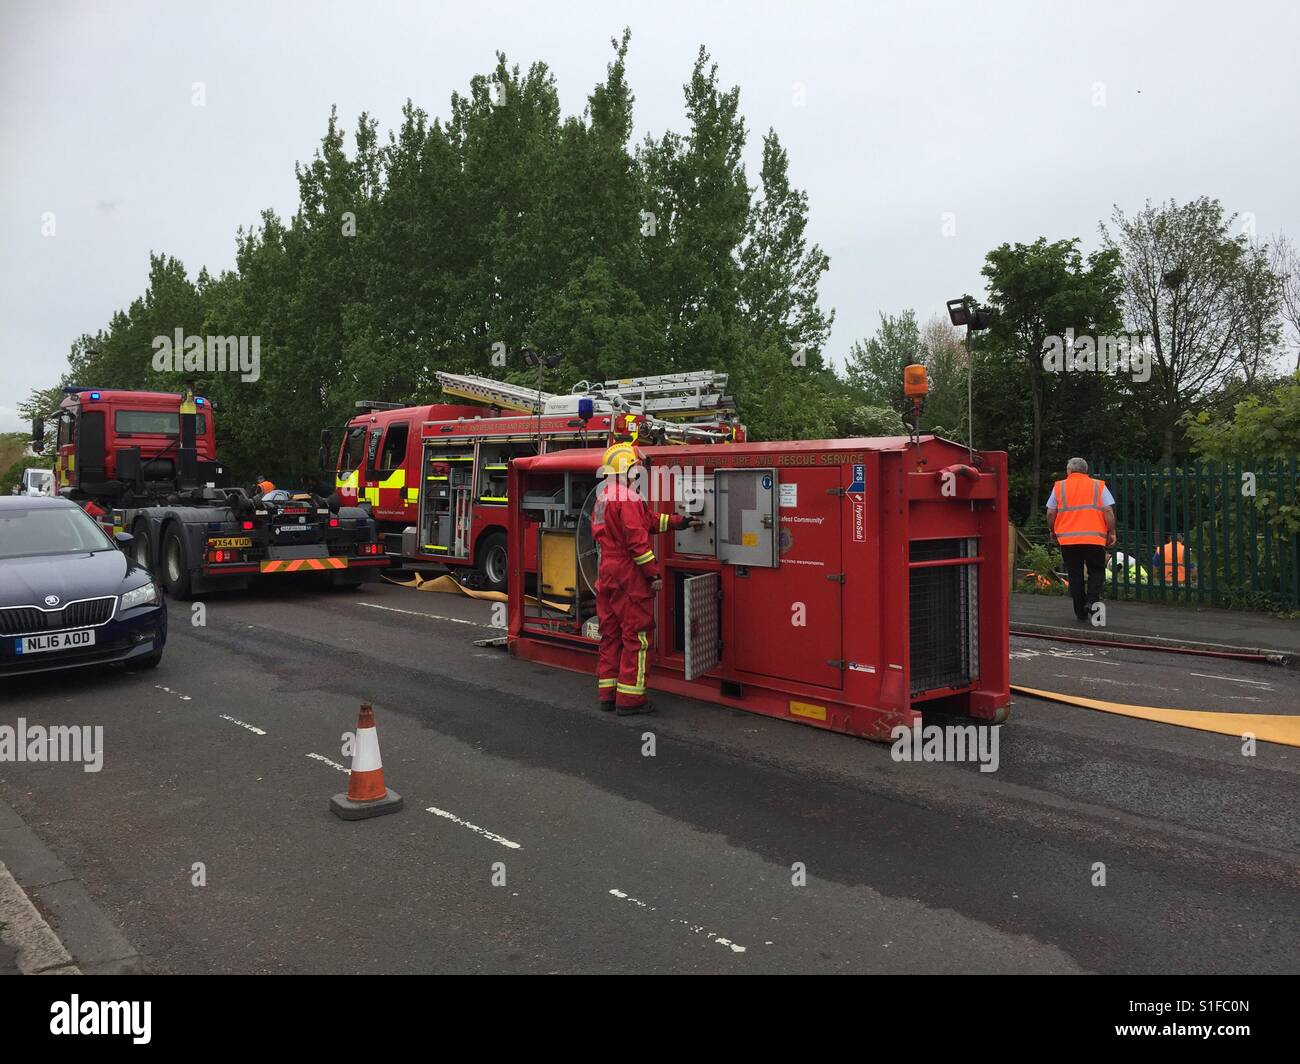 Firebrigade tackle flooded metro line today - Stock Image